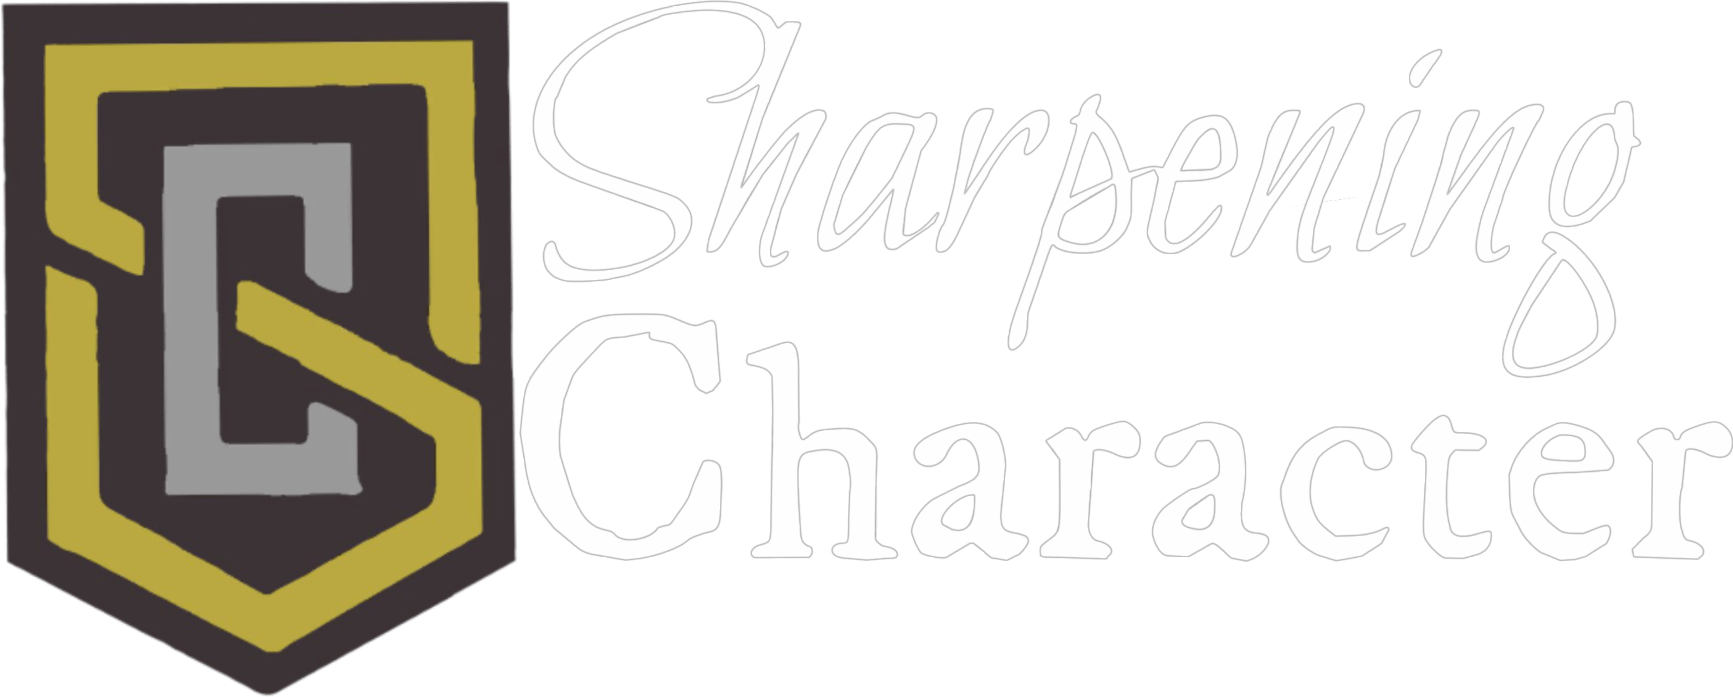 Faith clipart calligraphy. The sharpening character podcast